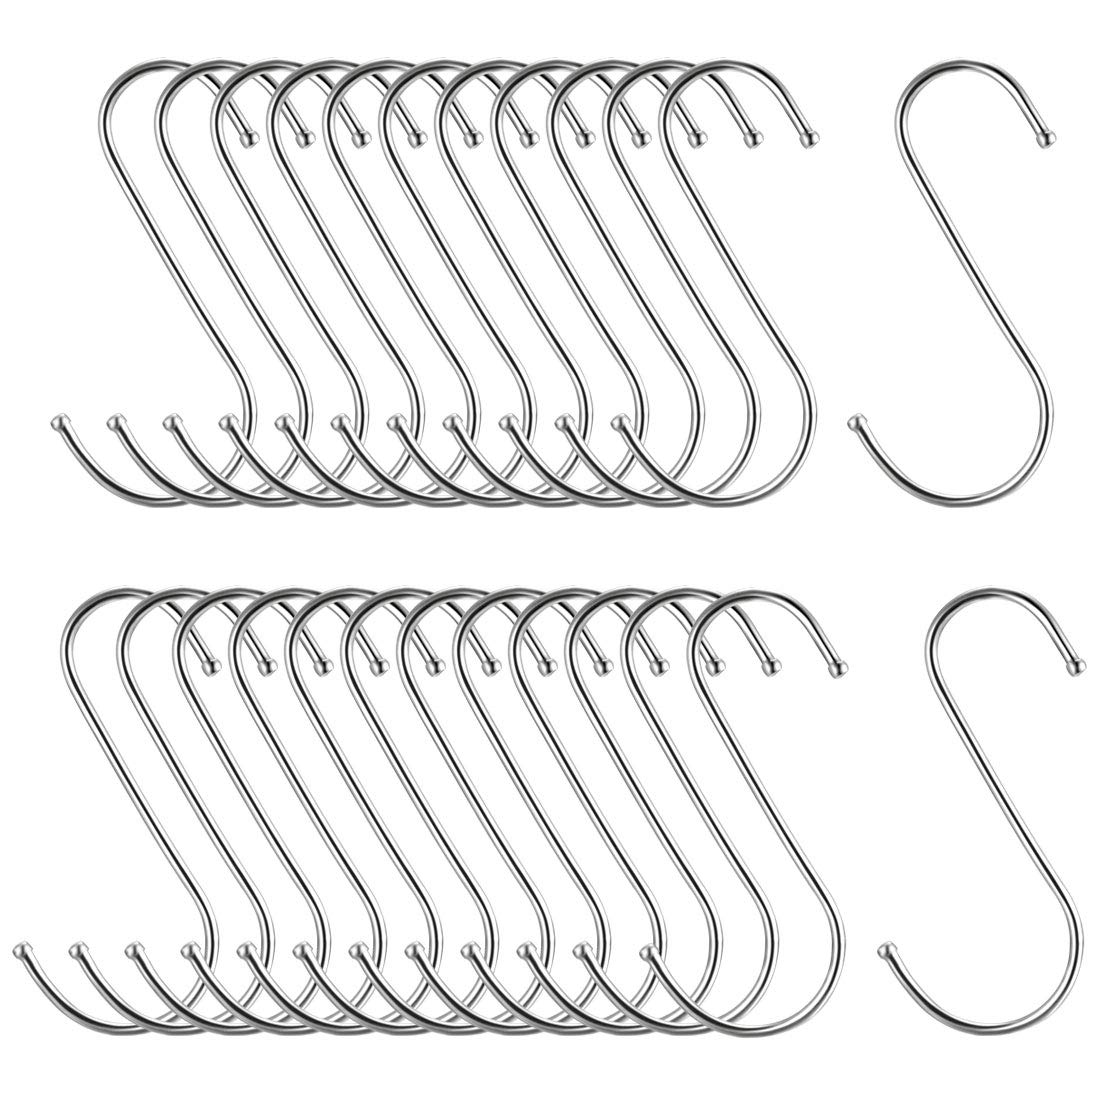 uxcell Metal S Hooks 4.53 S Shaped Hook Hangers for Kitchen Bathroom Bedroom Storage Room Office Outdoor Multiple Uses 20pcs